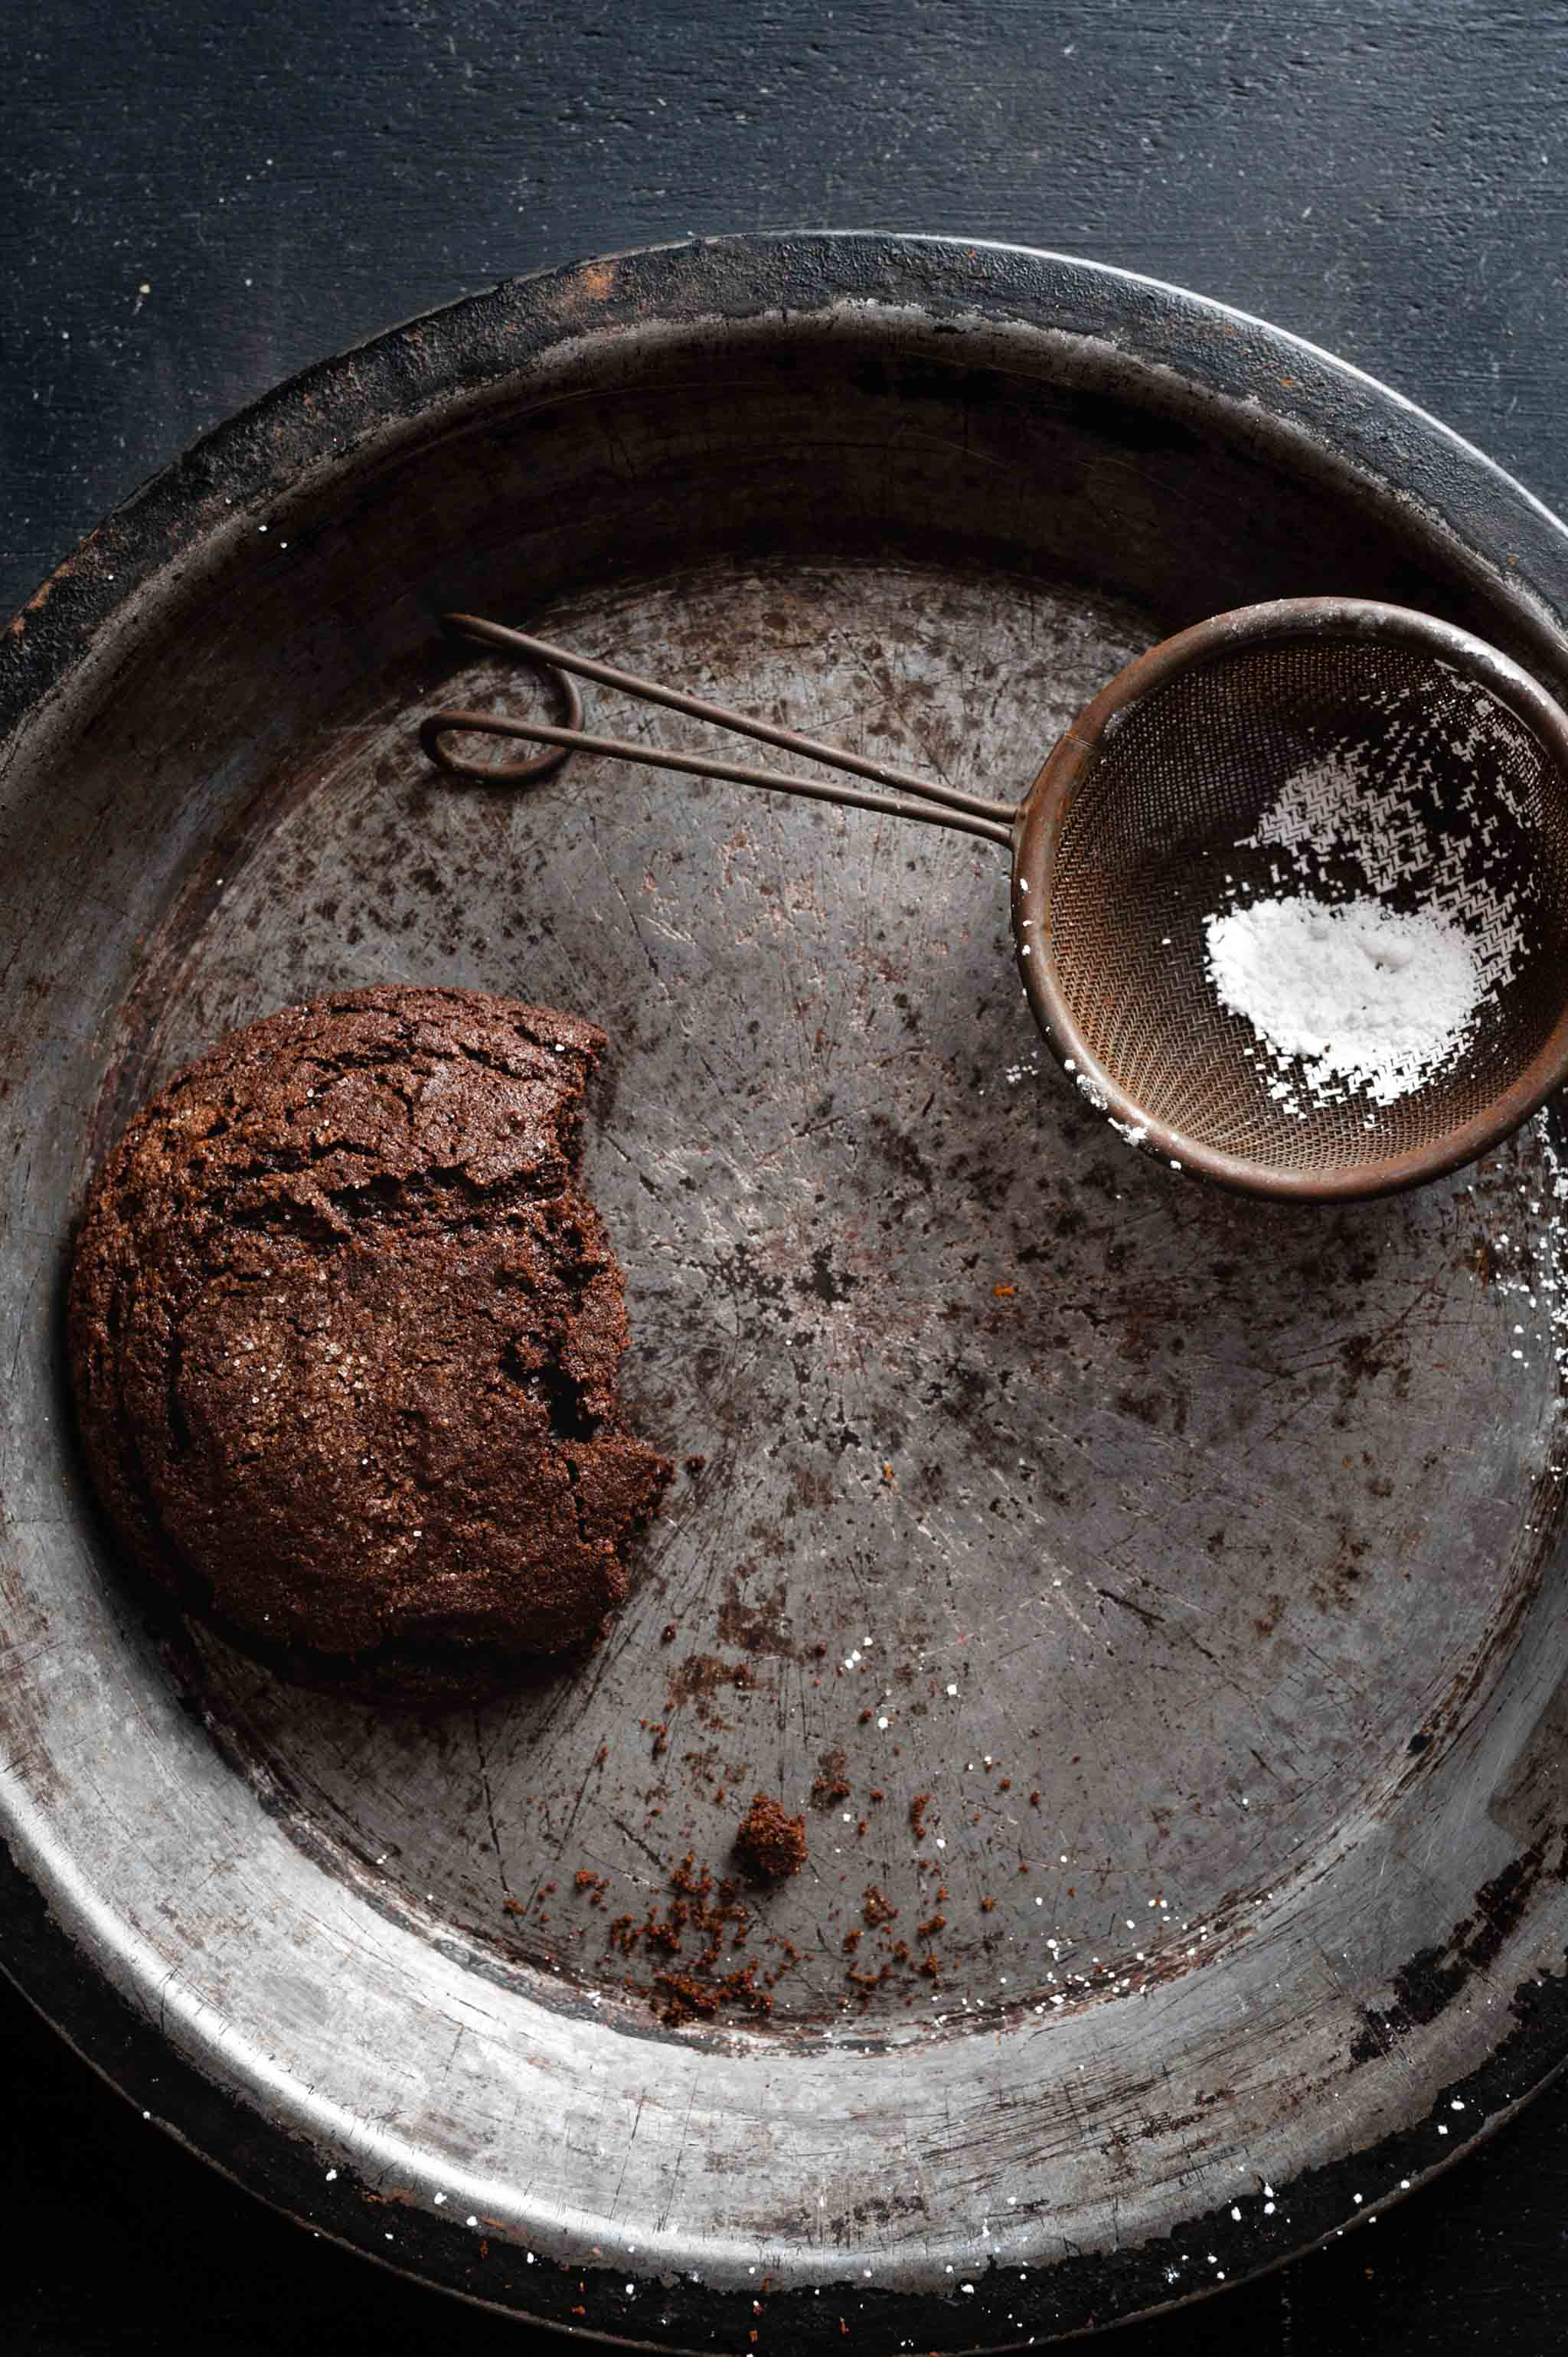 Chocolate Gingerbread Cookie Recipe with powdered sugar topping